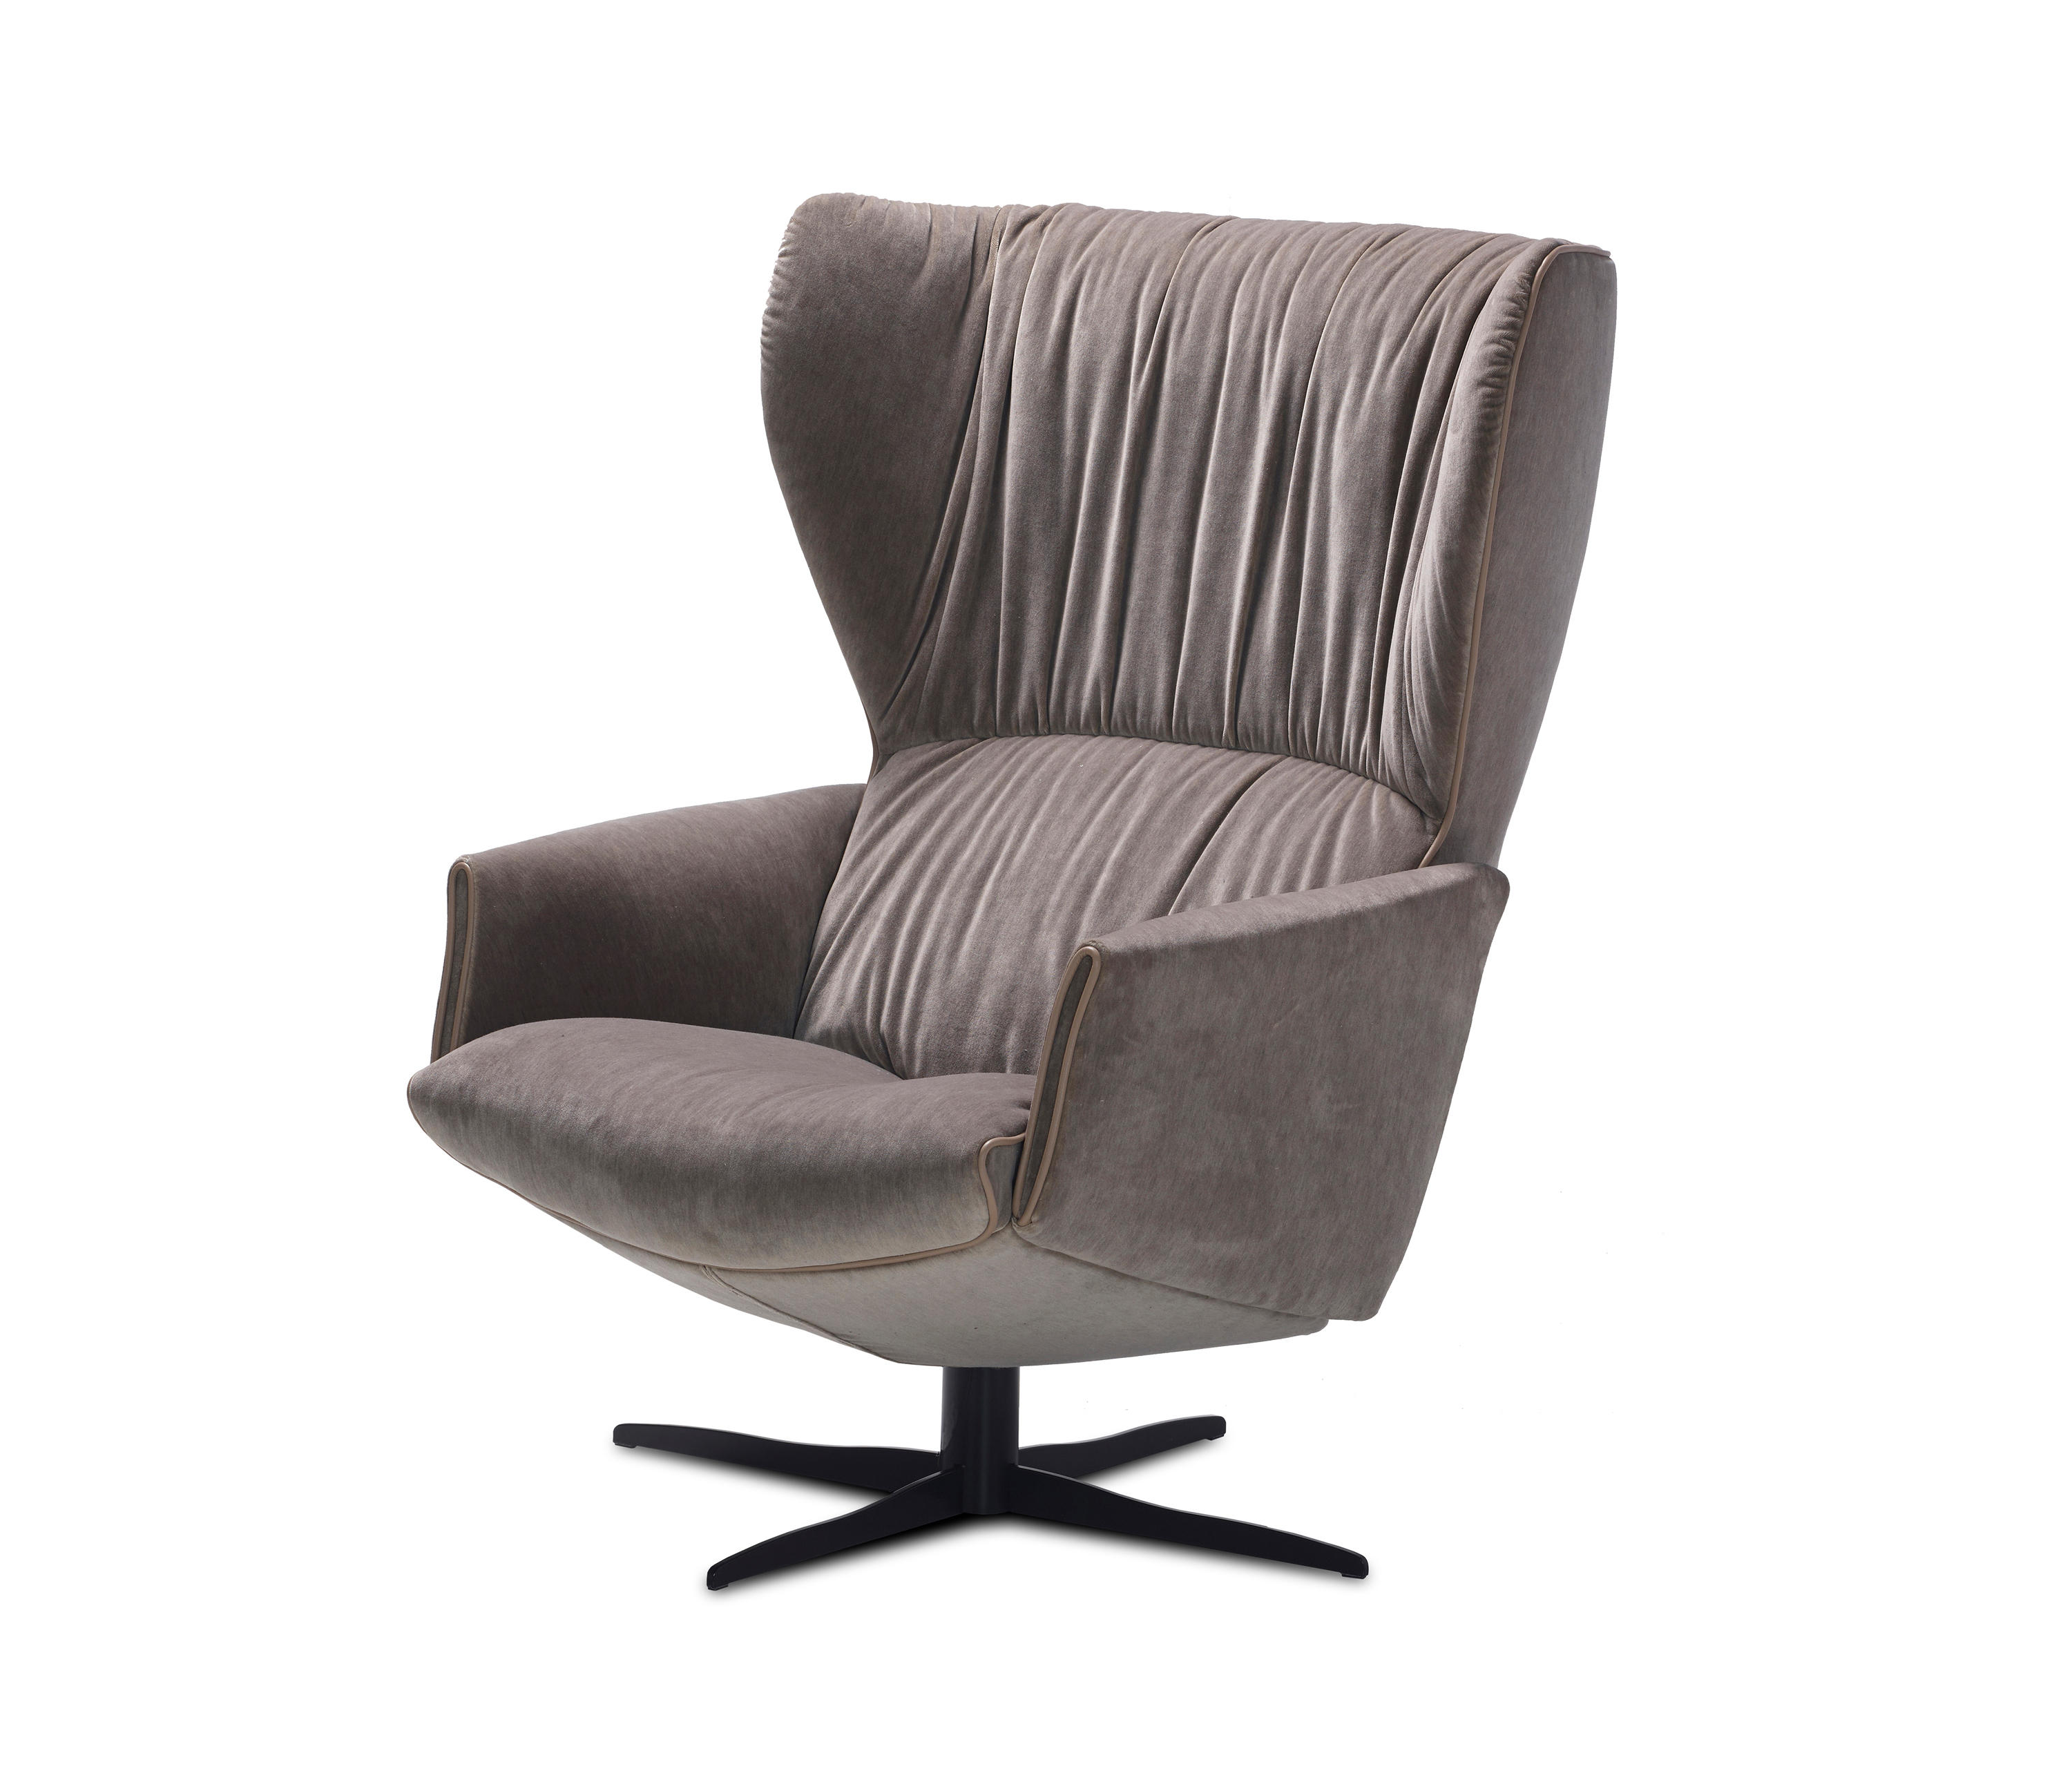 rapsody lounge armchair by jori  lounge chairs. rapsody lounge armchair  lounge chairs from jori  architonic